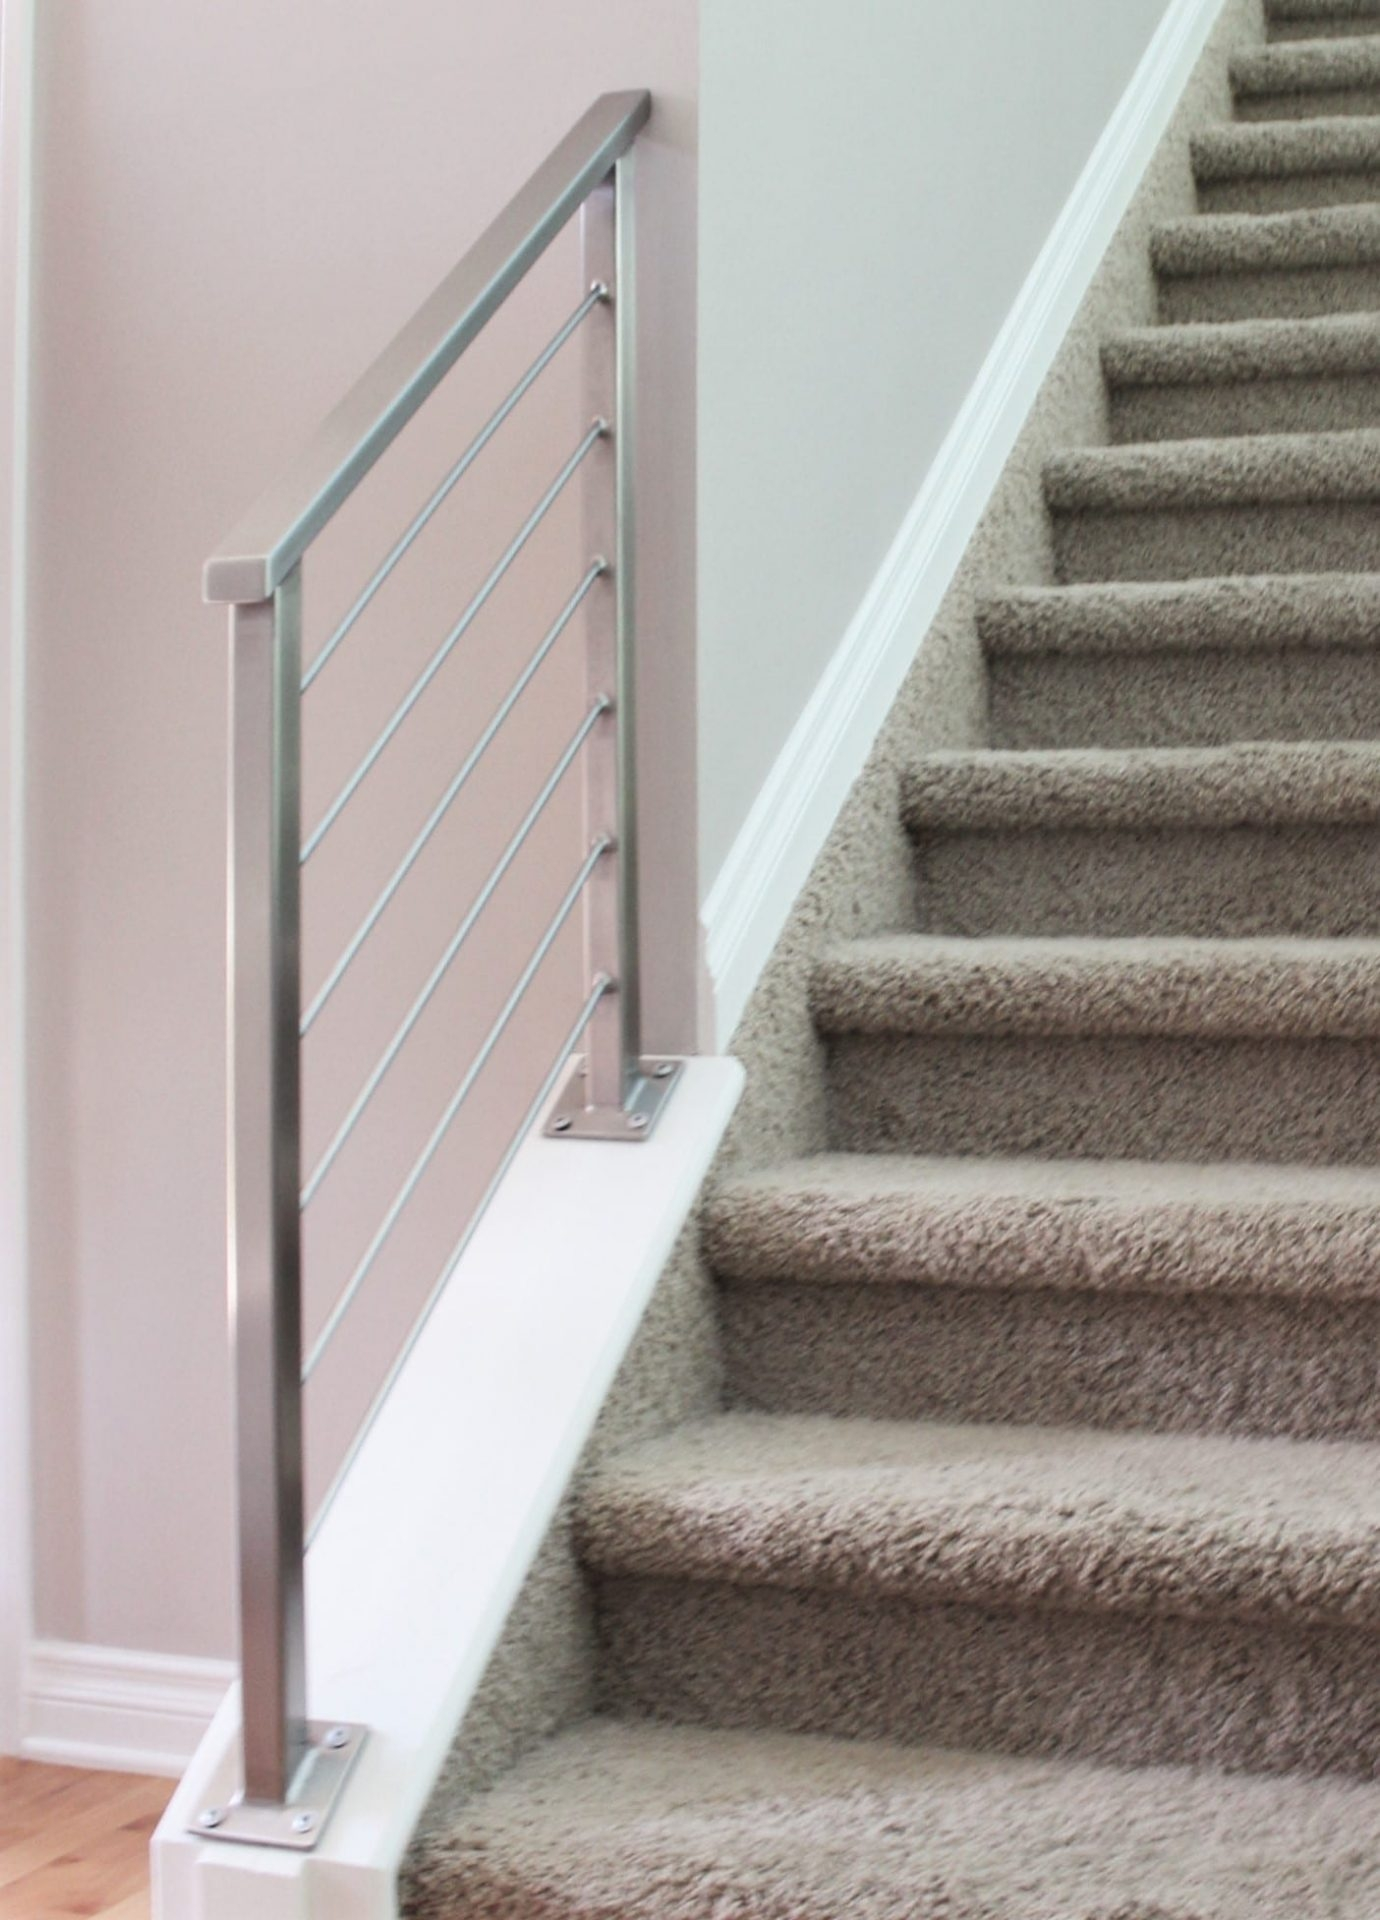 Horizontal Railing In Stainless Steel Great Lakes Metal Fabrication | Modern Stainless Steel Staircase Railing | Modular Steel | Hand | Crystal Handrail | Contemporary | Exterior